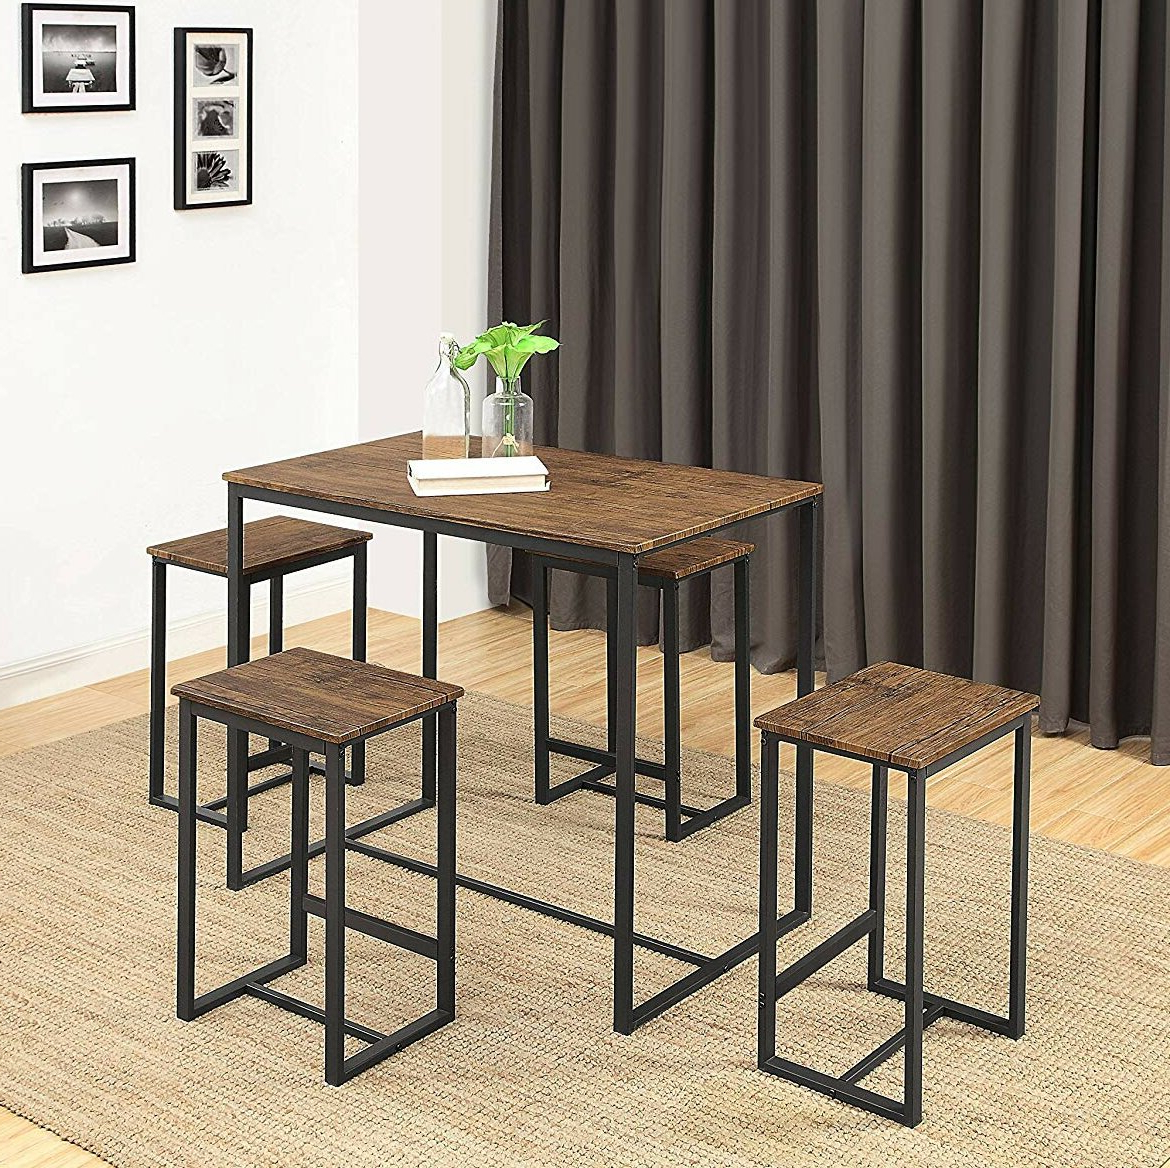 Delmar 5 Piece Dining Set For Well Liked Wallflower 3 Piece Dining Sets (View 5 of 20)